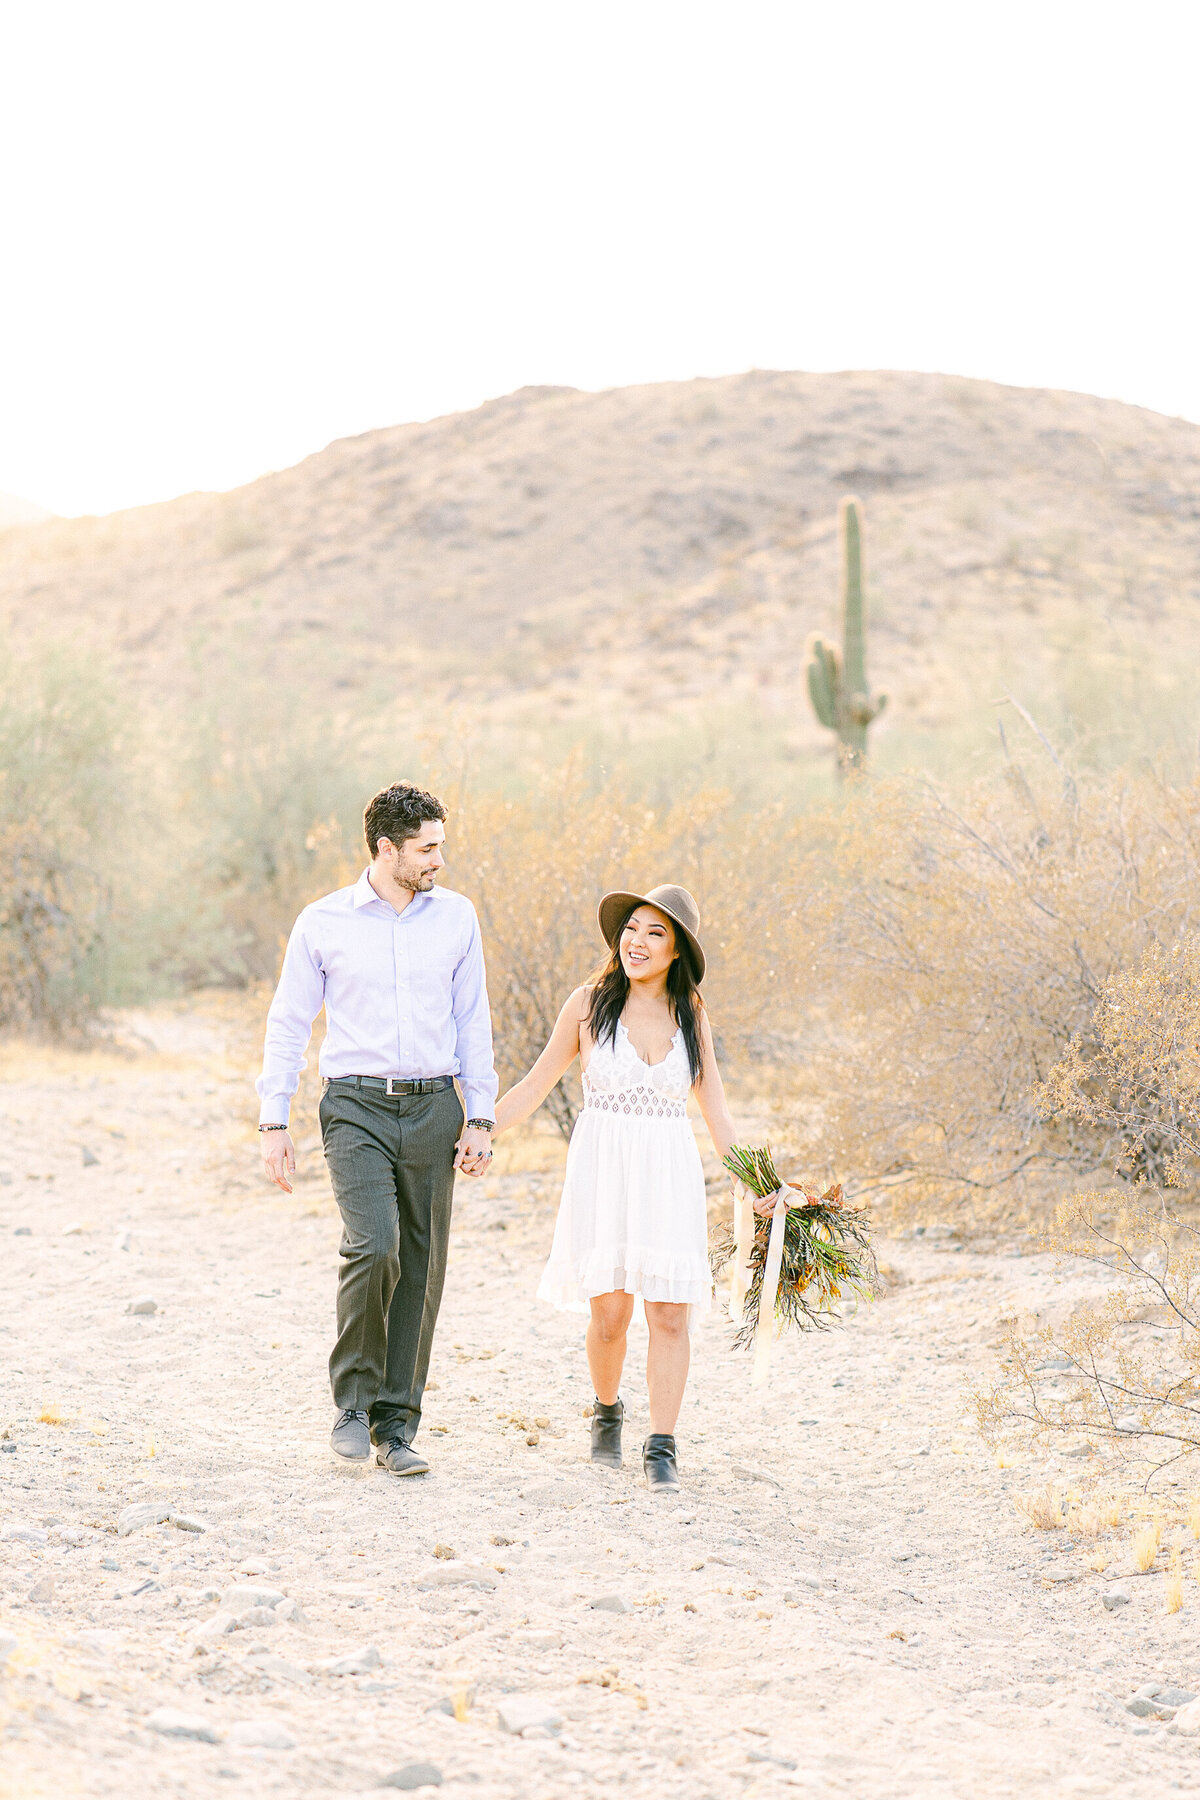 Desert Engagement Session - South Mountain Phoenix Arizona - Arizona Wedding Photographer - Atlas Rose Photography AZ01